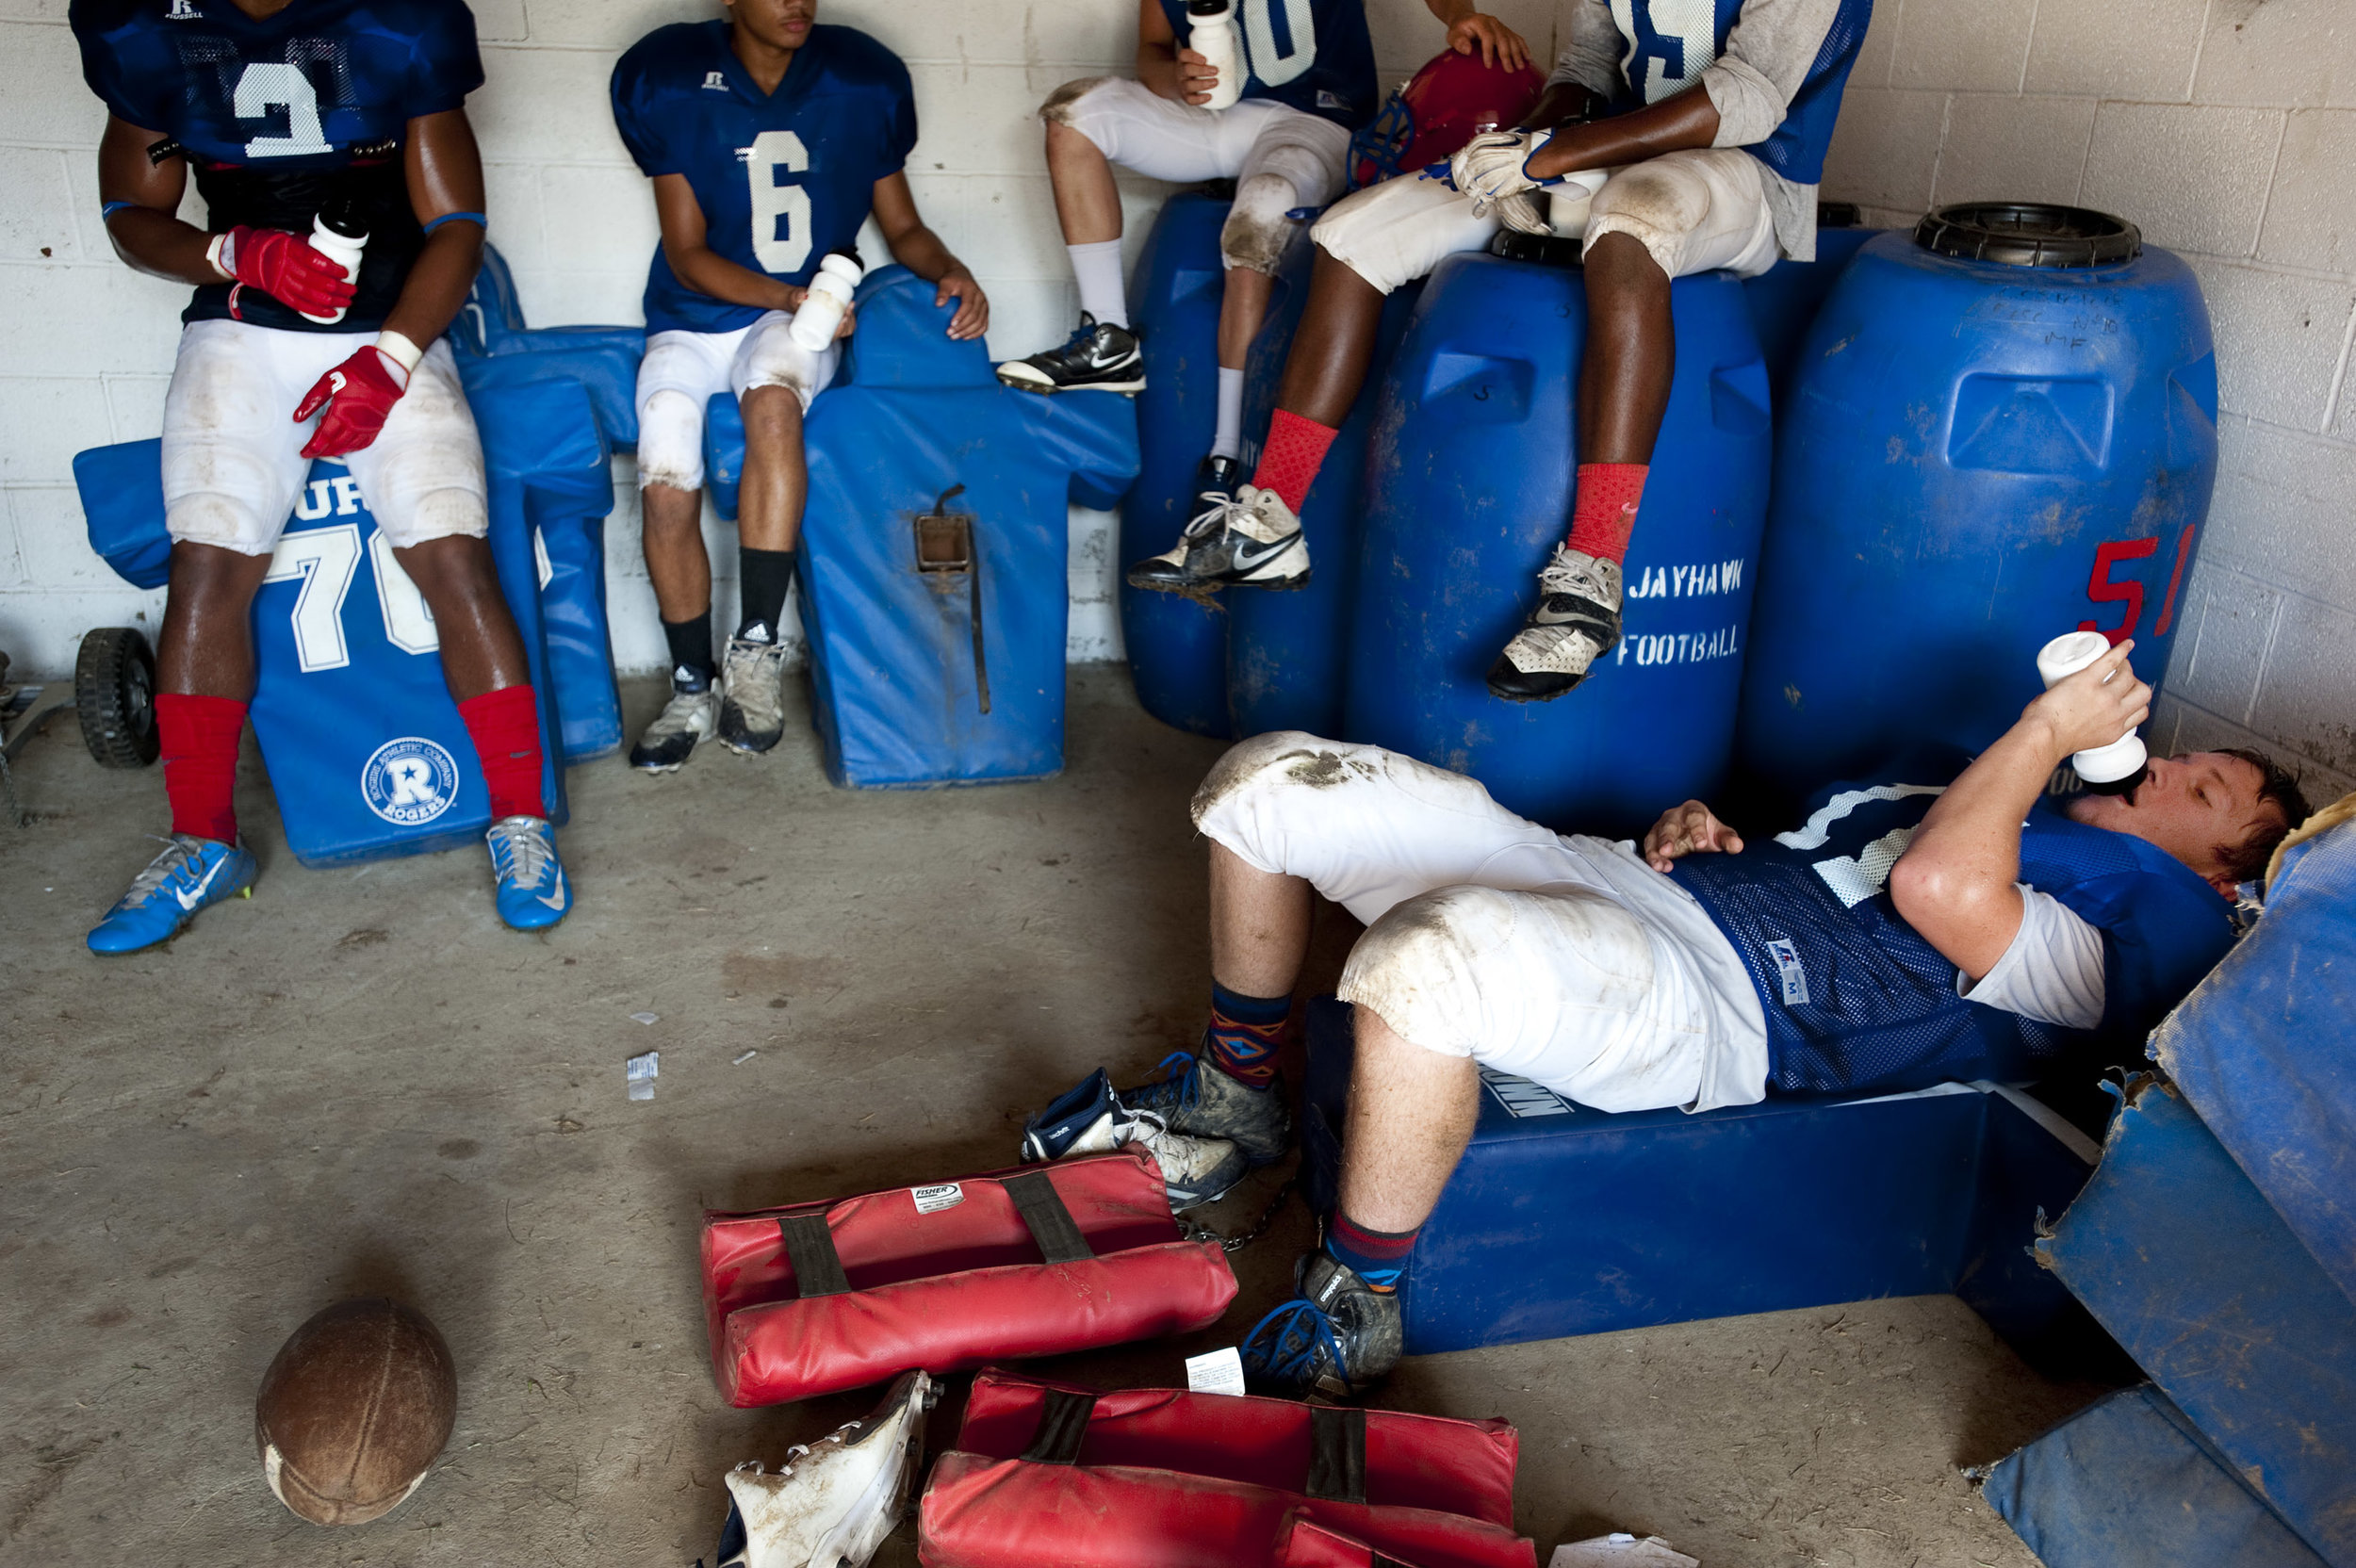 Jeannette Jayhawk Shayne Darling takes a water break with his teammates during the first day of WPIAL football practices on Monday, Aug. 15, 2016. The first game of the regular season is Friday, Sept. 2.